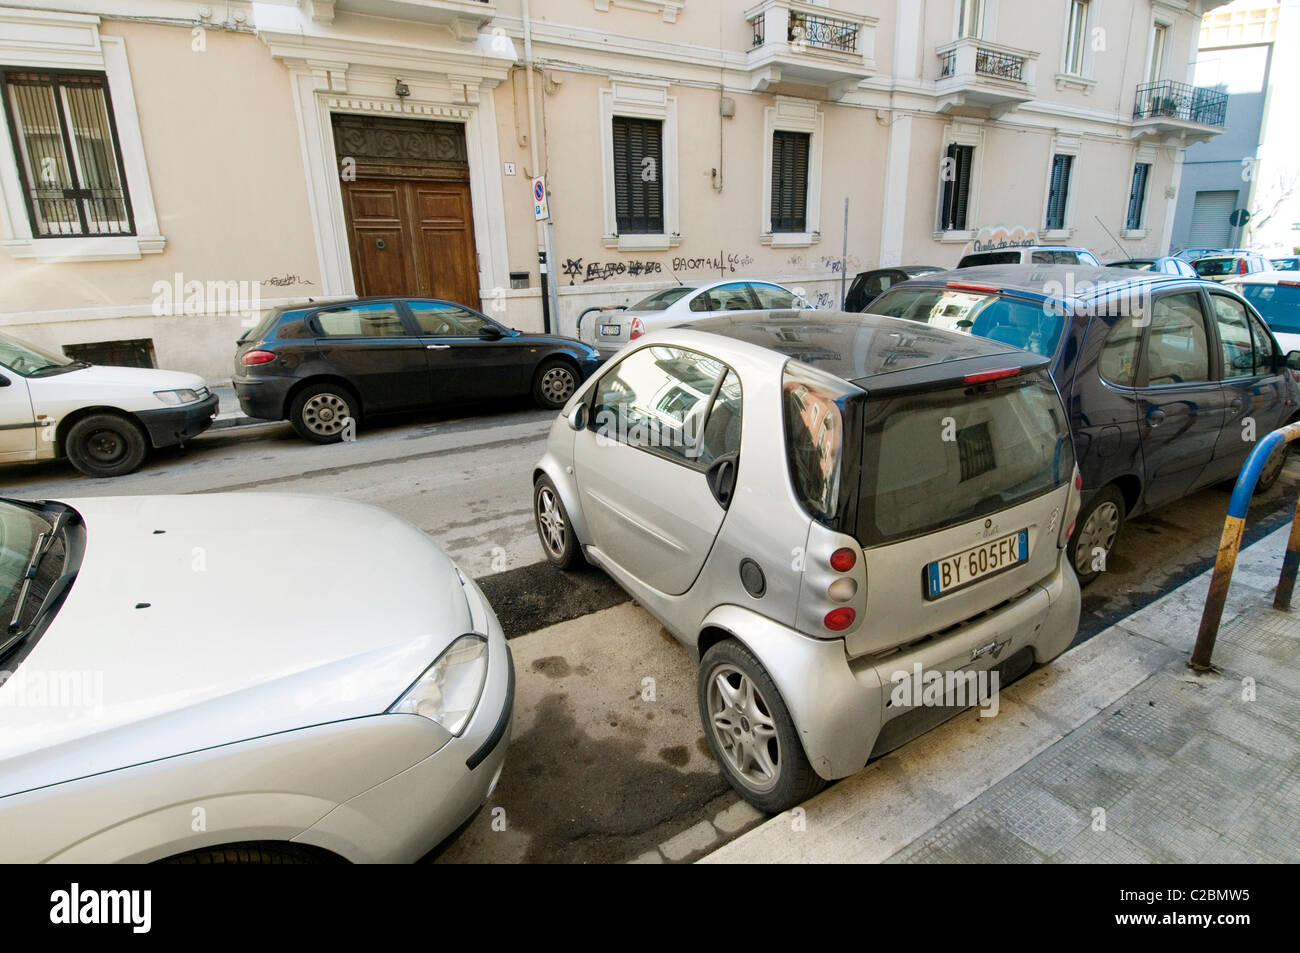 smart car cars small tiny parked end on to kerb in city cities